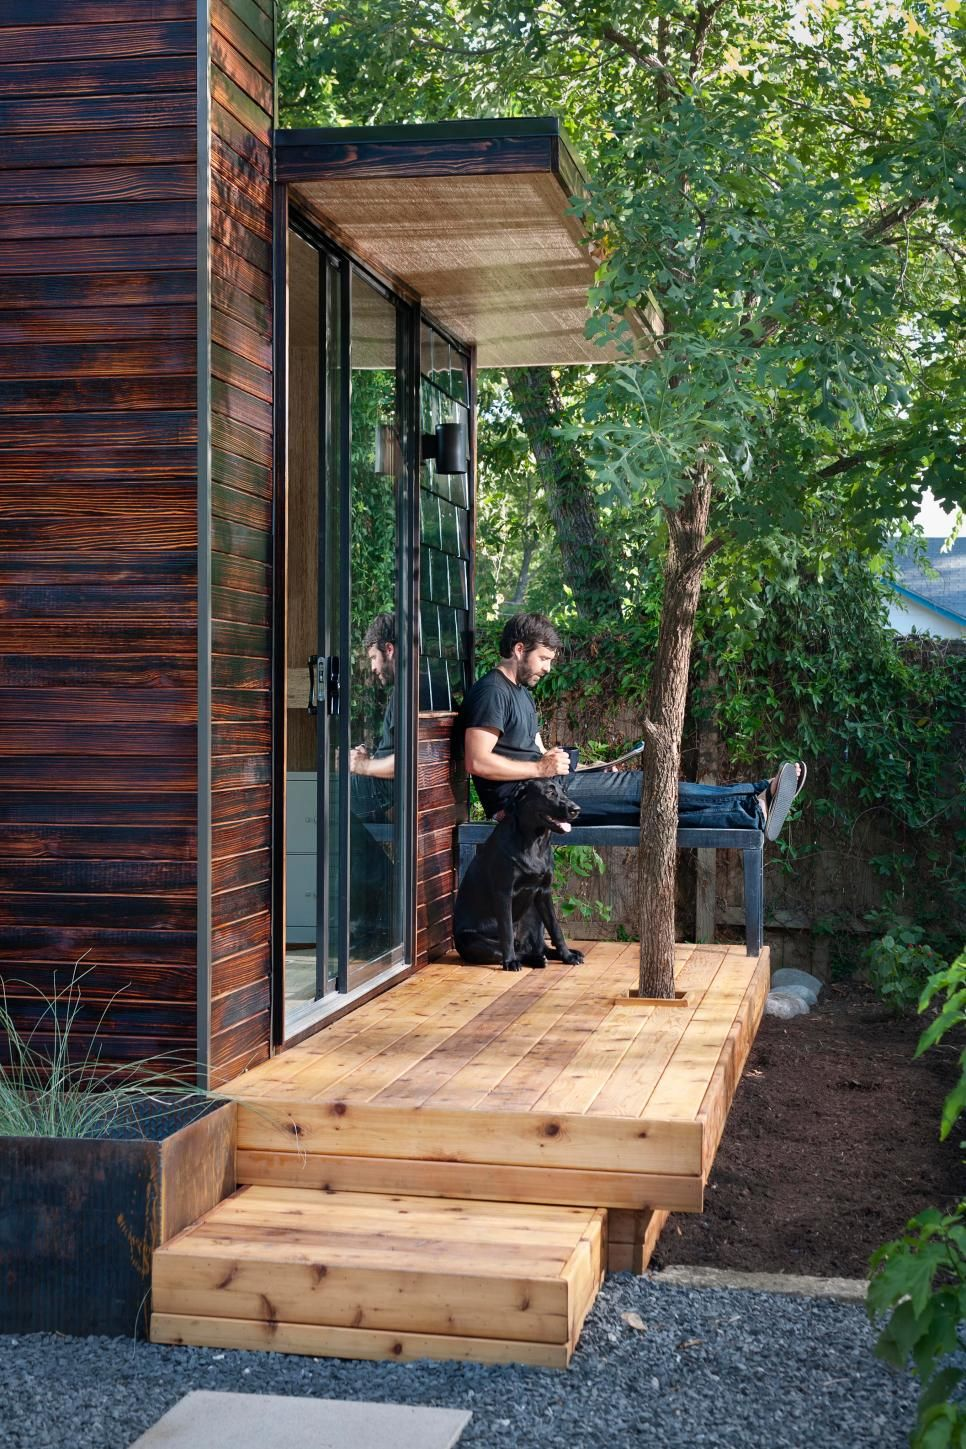 tiny backyard home office. Tiny Backyard Home Office With Deck And Table 0